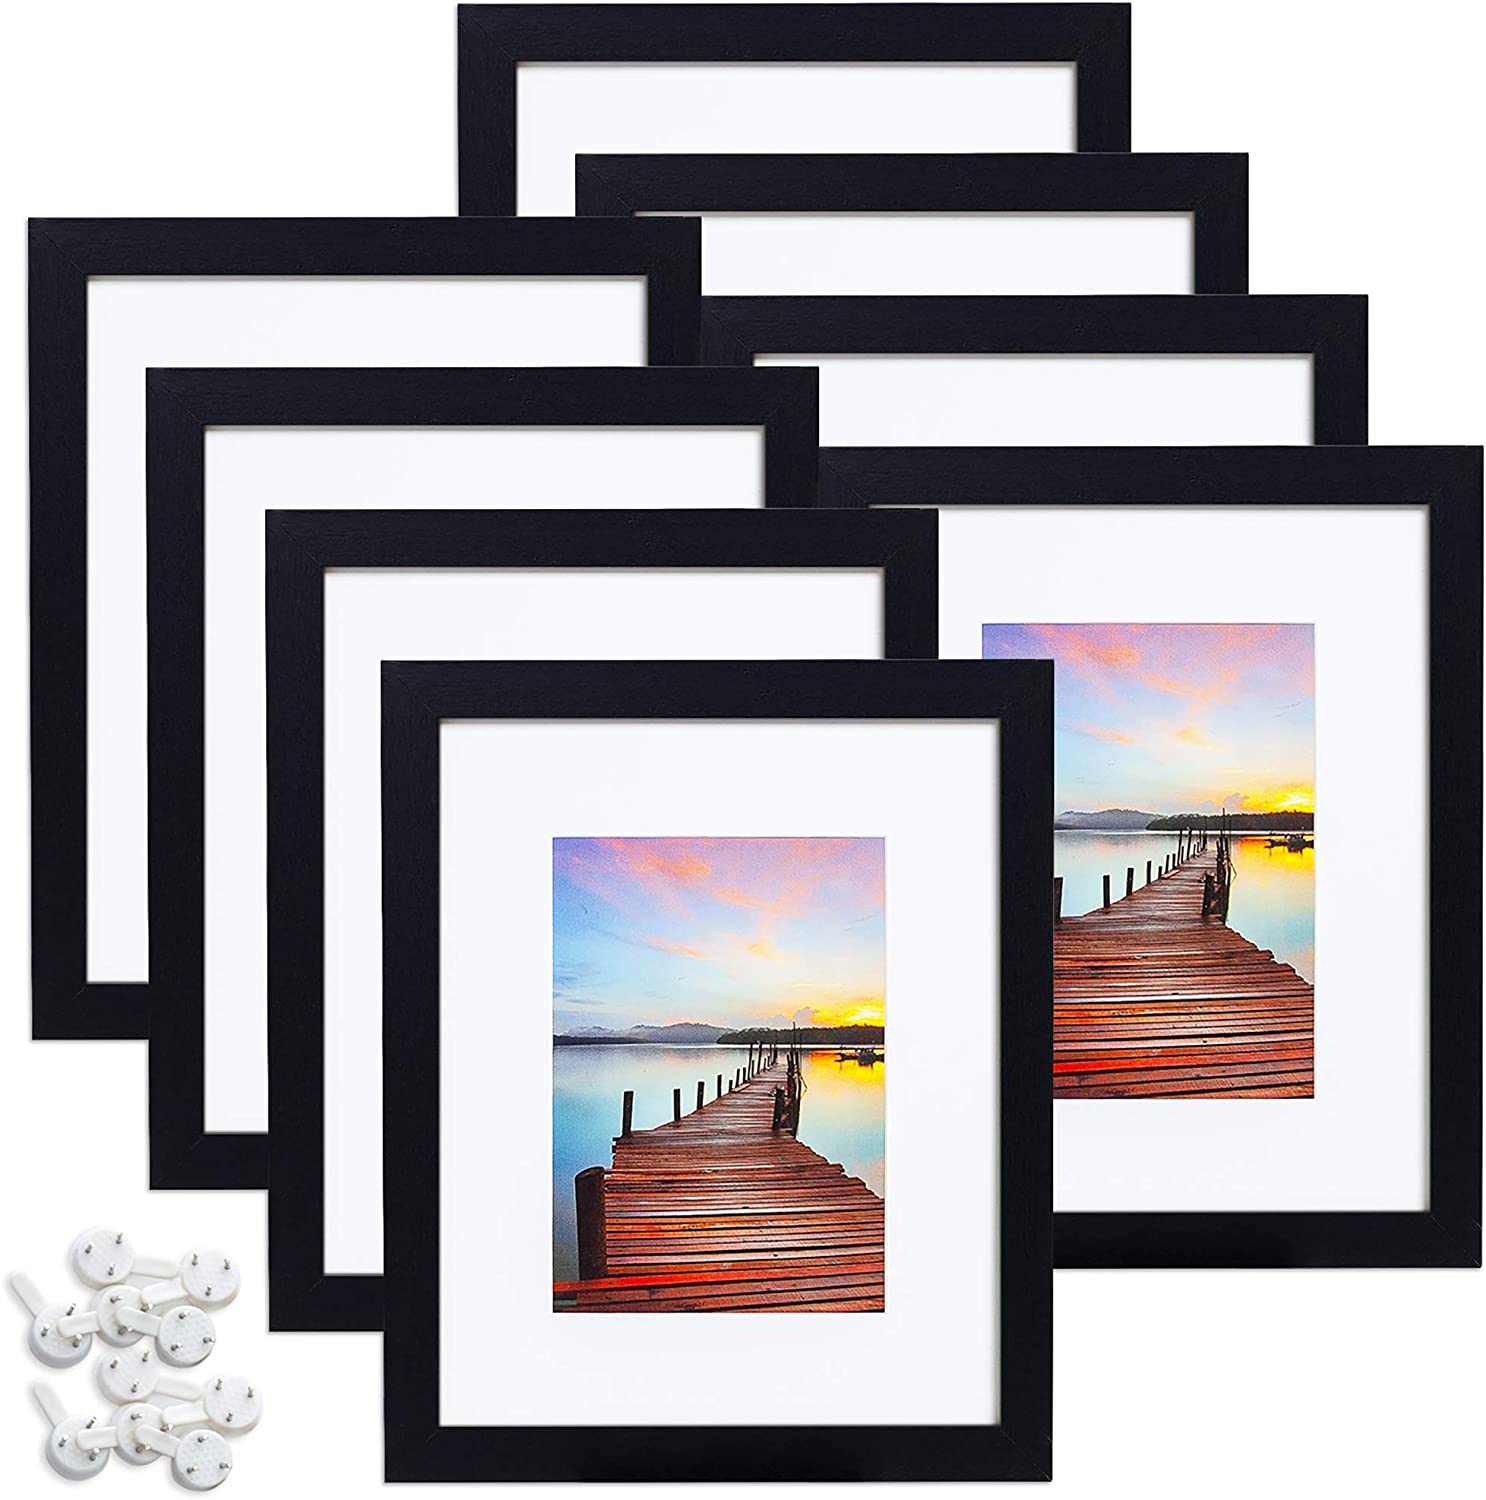 Sindcom 8x10 Picture Frame Black Free Shipping Cheap Bargain Gift Wood SEAL limited product Frames Photo Col Textured